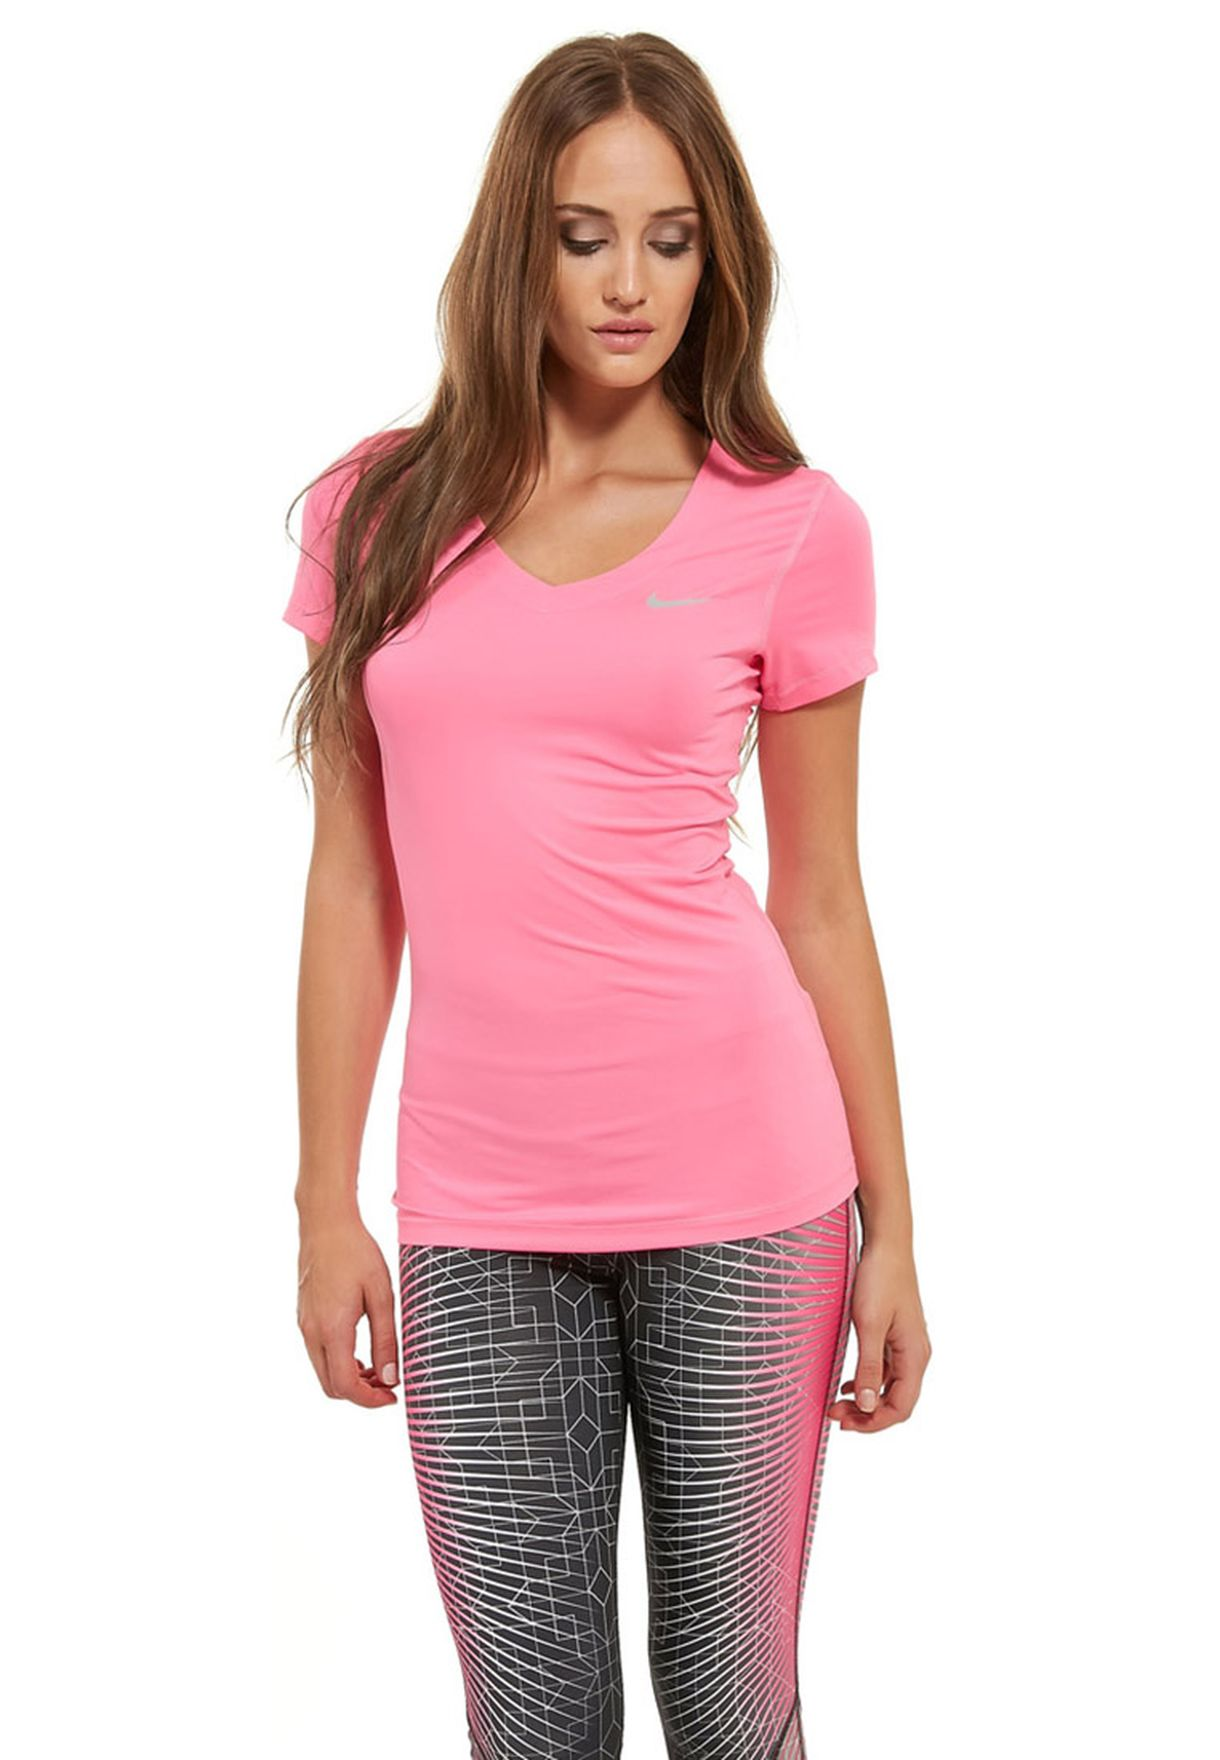 Pink Oman Nike 682 Women Nkap589370 Ss V Neck Shop Pro In For w1PWC5xq